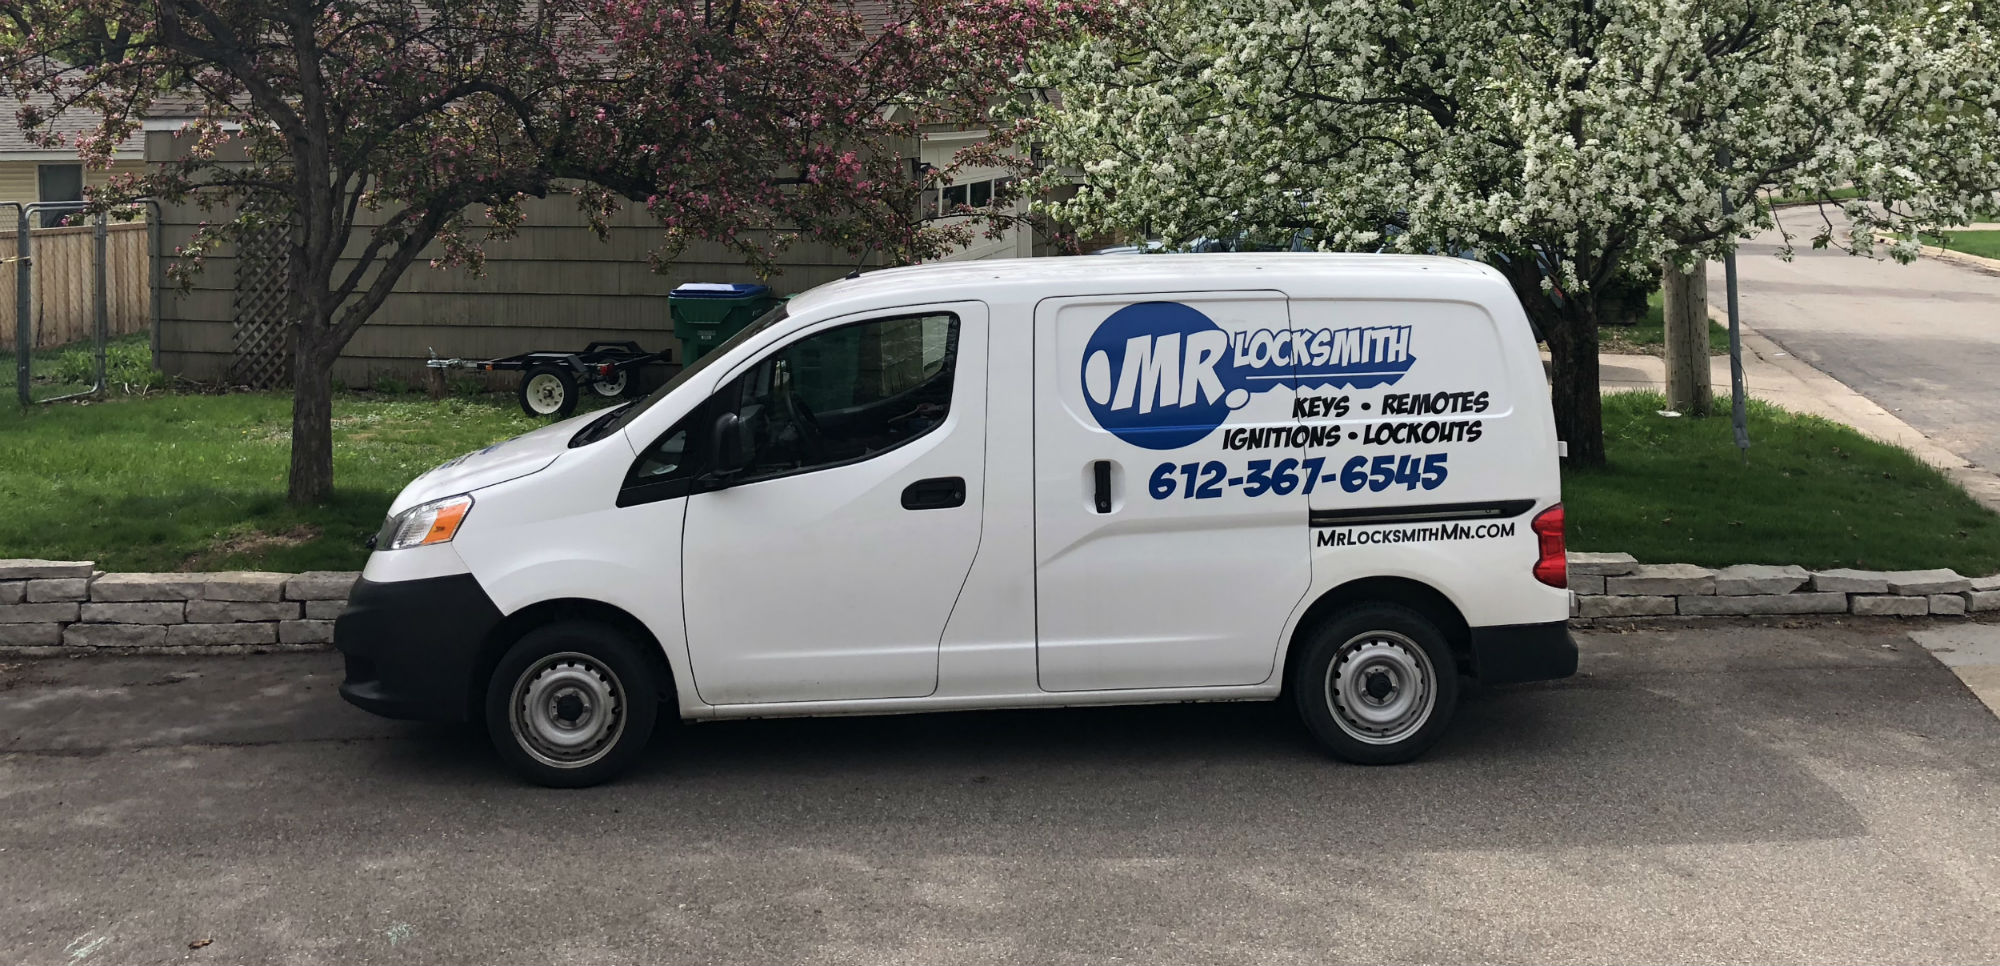 about Mr Locksmith MN -Golden Valley MN